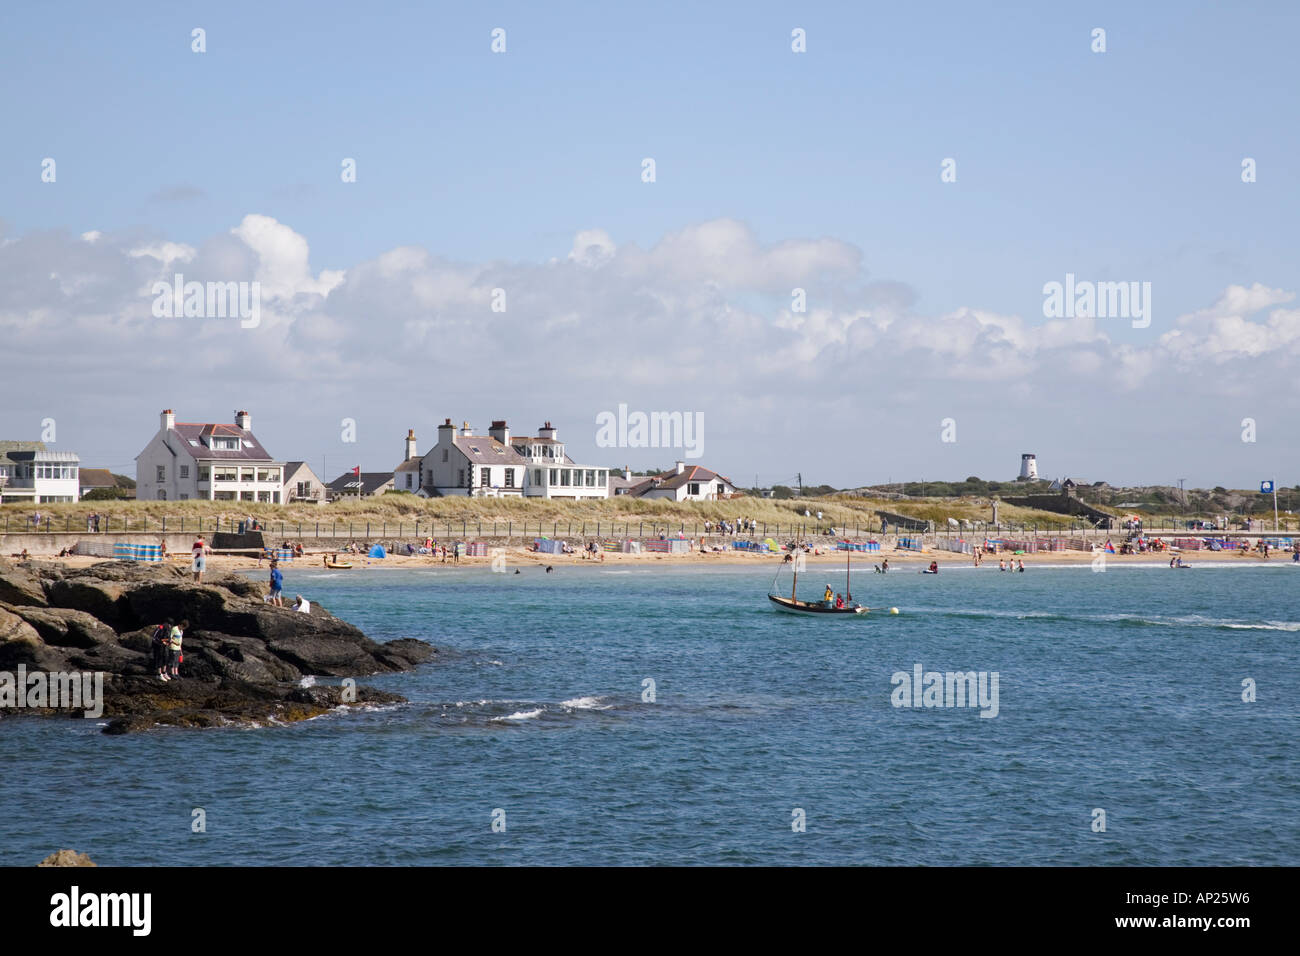 Trearddur Bay beach busy with tourists from rocks on sunny blue sky day in summer. Trearddur Isle of Anglesey North Wales UK - Stock Image